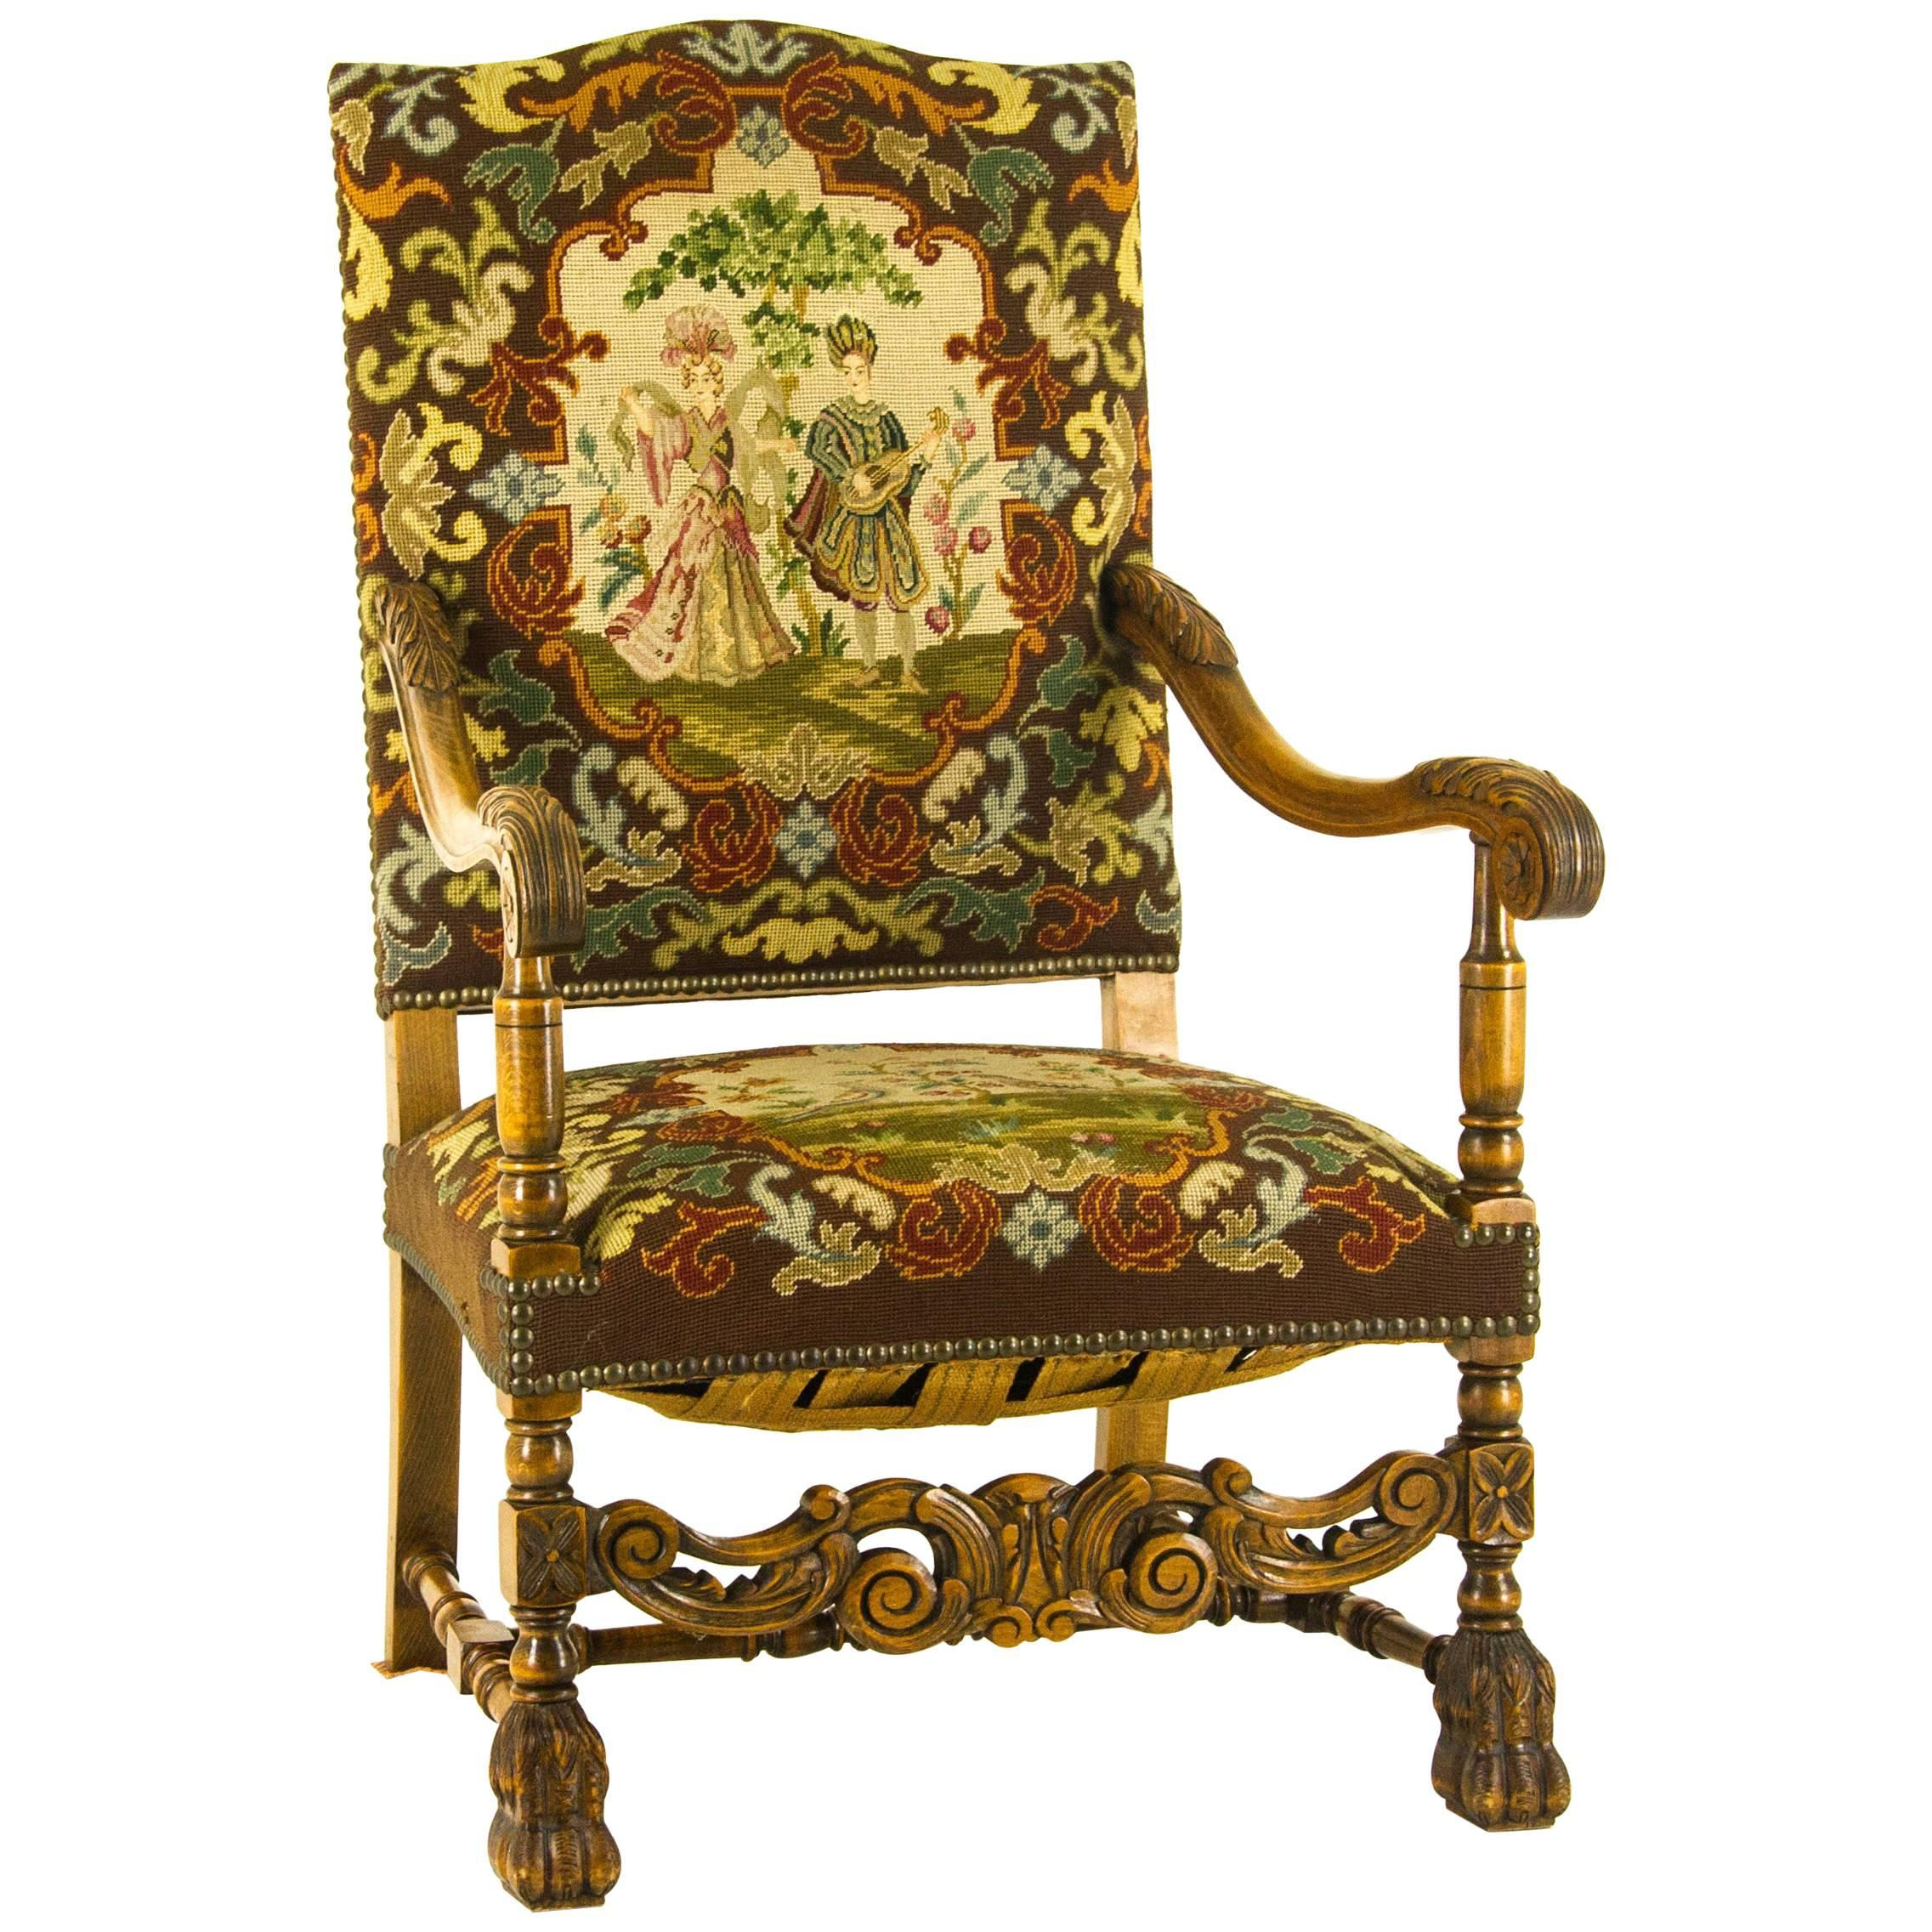 Charmant Antique Armchair, Walnut Antique Chair, France, 1880 REDUCED!!!! For